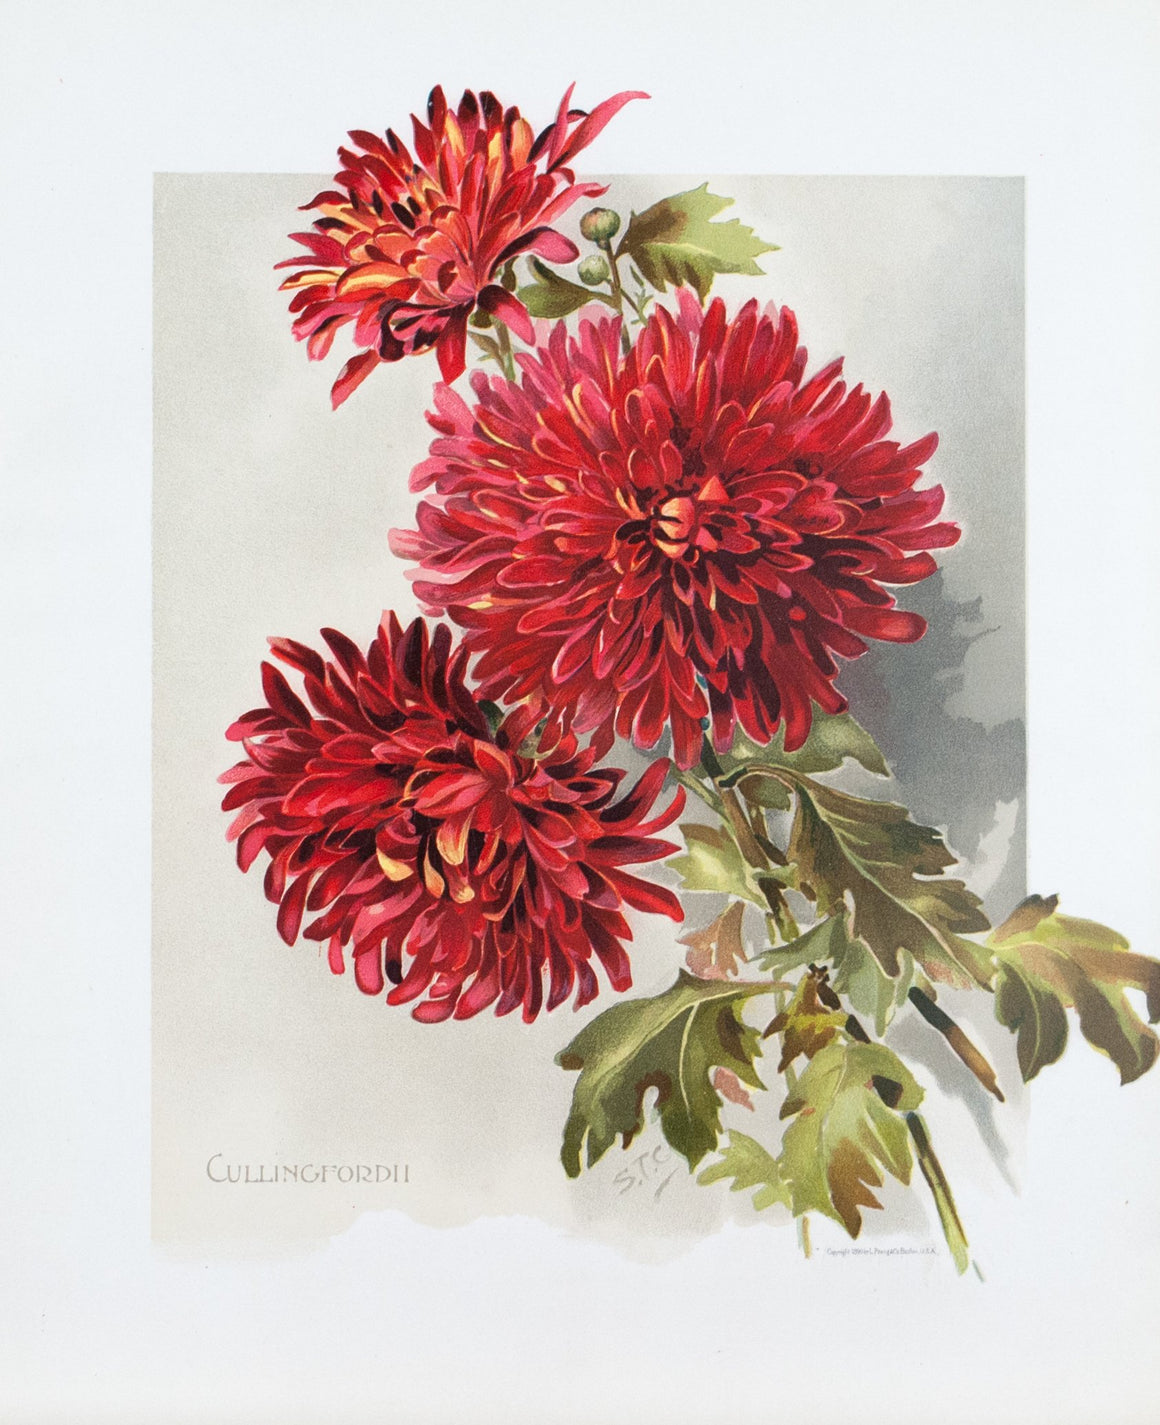 1890 Cullingfordii Chrysanthemum - Mathews